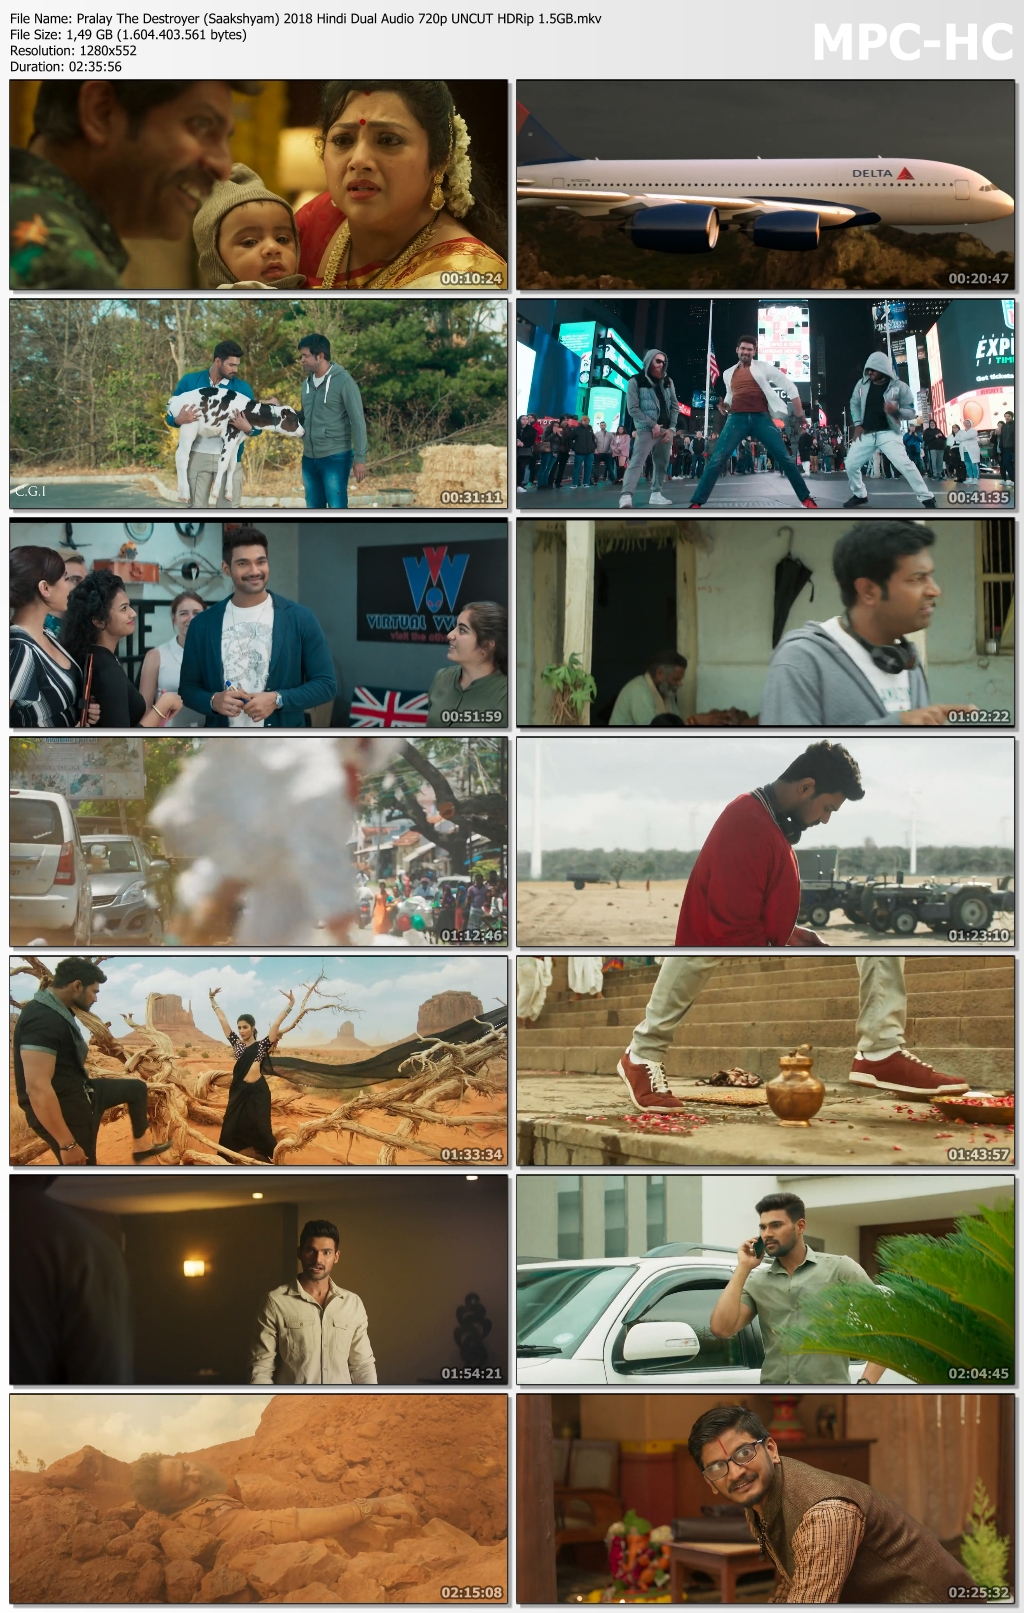 Pralay-The-Destroyer-Saakshyam-2018-Hindi-Dual-Audio-720p-UNCUT-HDRip-1-5-GB-mkv-thumbs